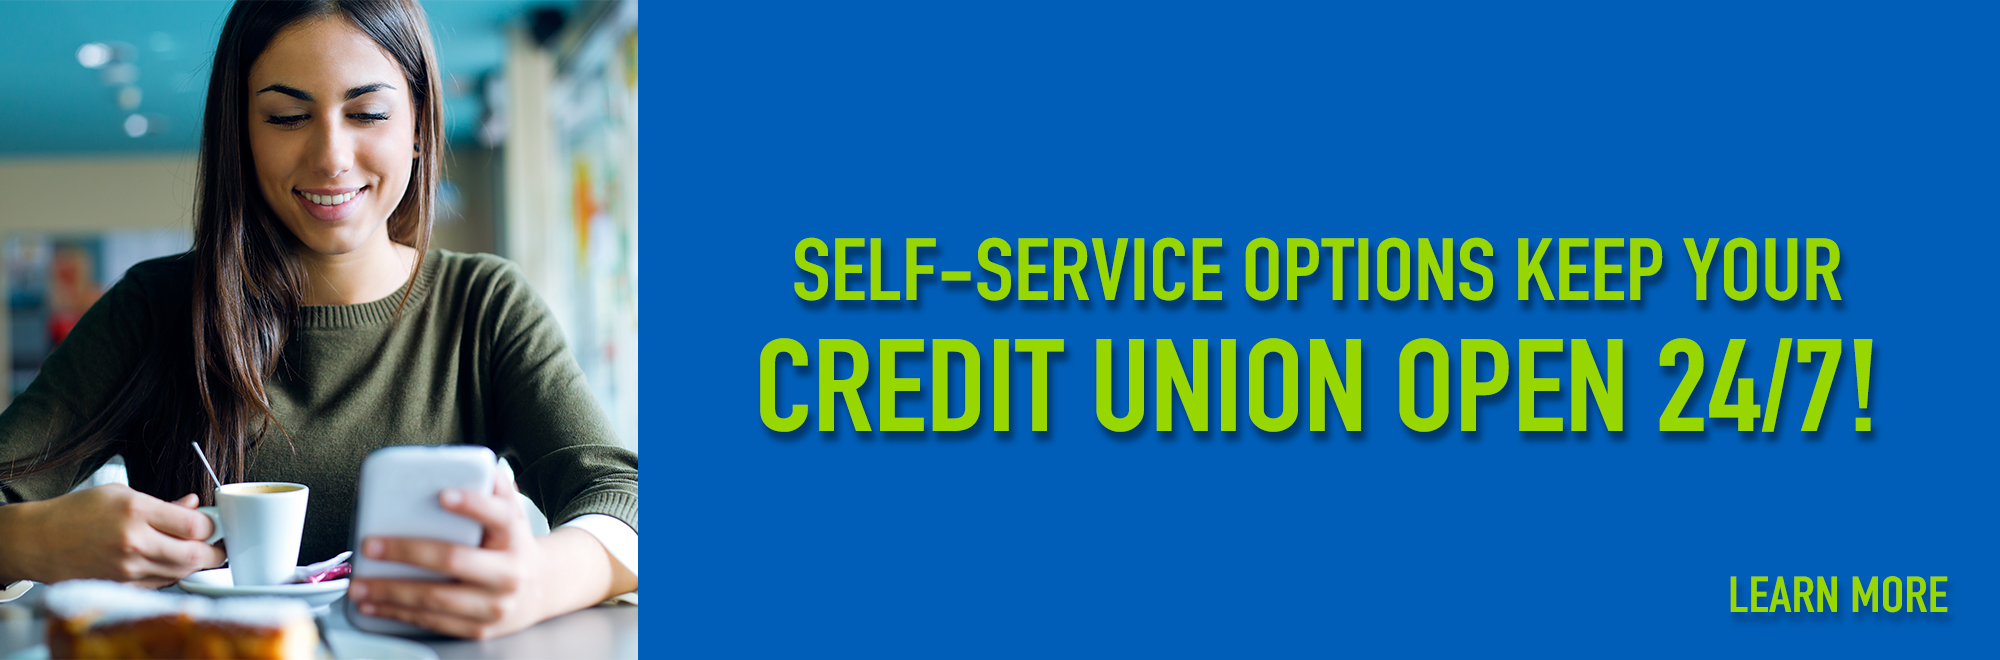 "Image of a girl using her cell phone. Text reading, ""Self-service options keep your credit union open 24/7! Learn more by clicking the banner."